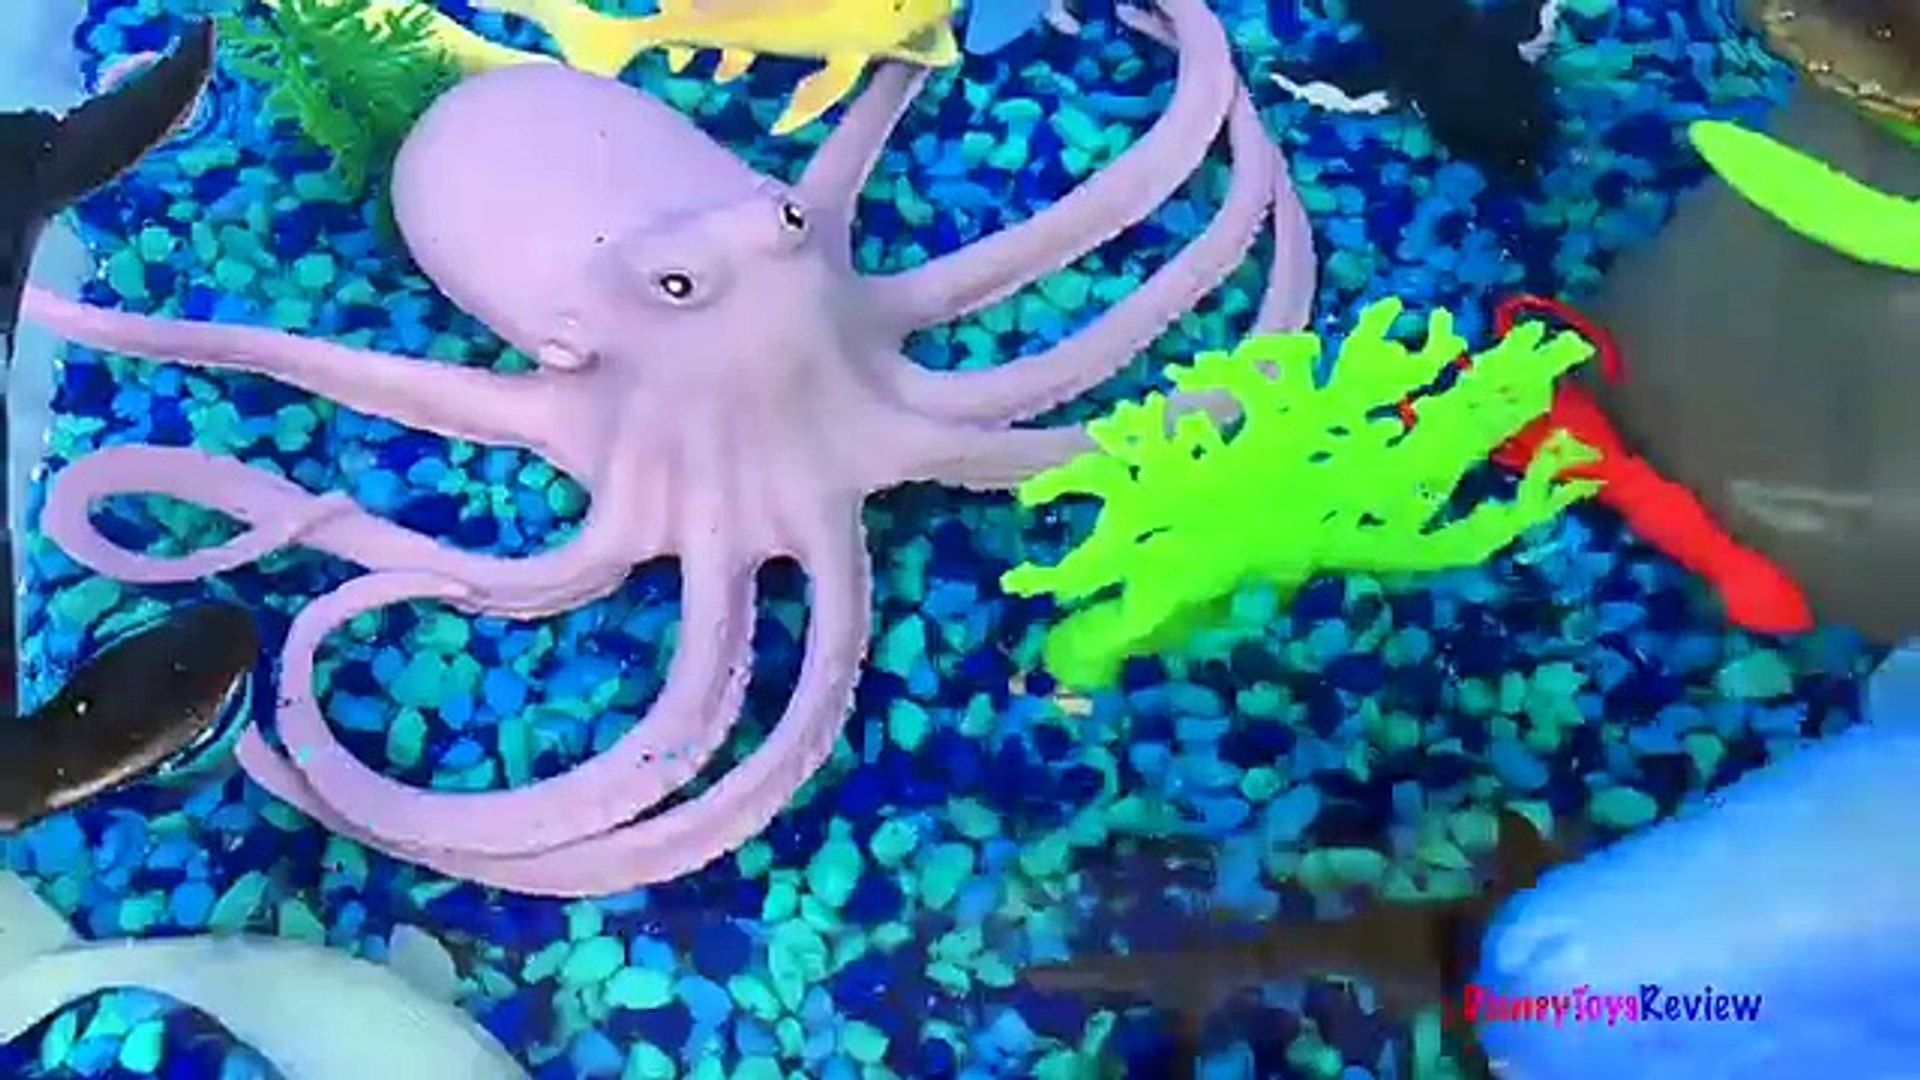 ANIMAL PLANET MEGA OCEAN TUB SHARKS DOLPHINS TURTLES SEAHORSE STARFISH OCTOPUS WHALE CRAB - UNBOXING